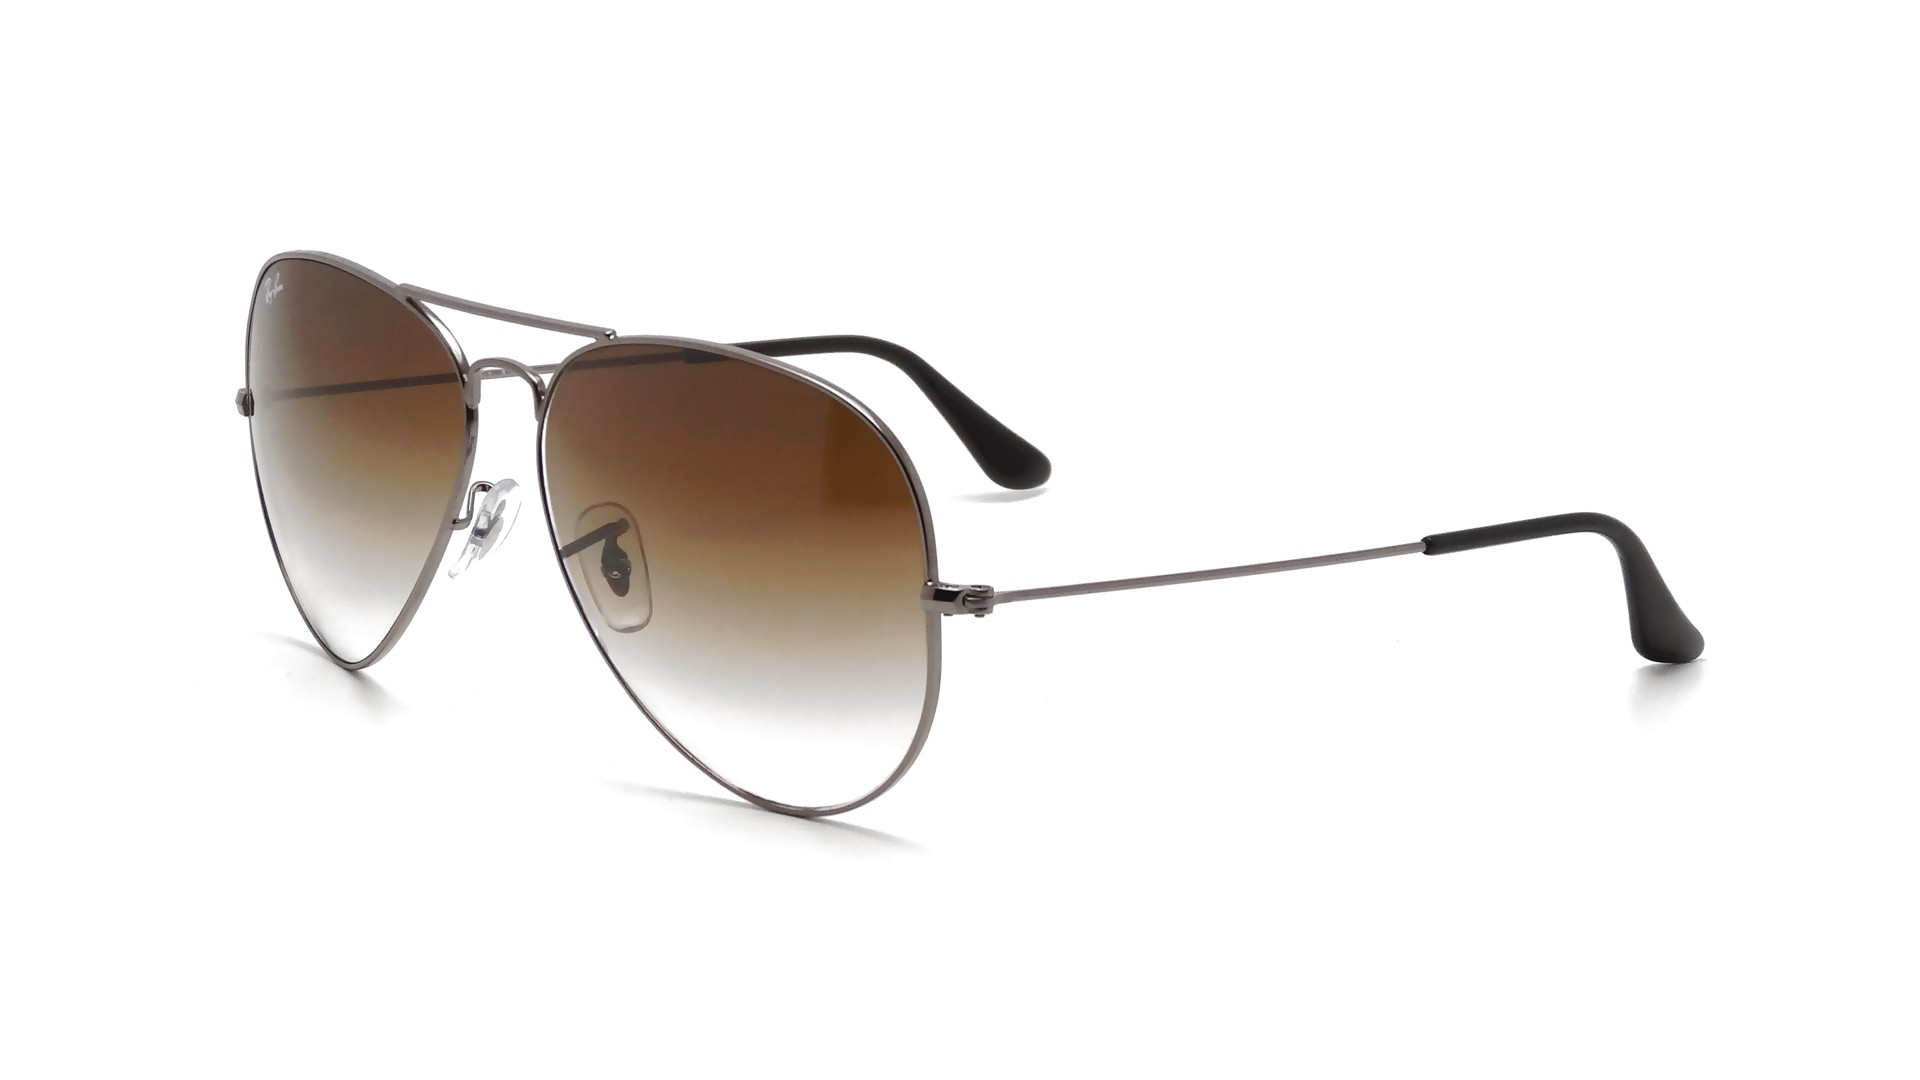 b317b762f08 Sunglasses Ray-Ban Aviator Large Metal Silver RB3025 004 51 55-14 Small  Gradient